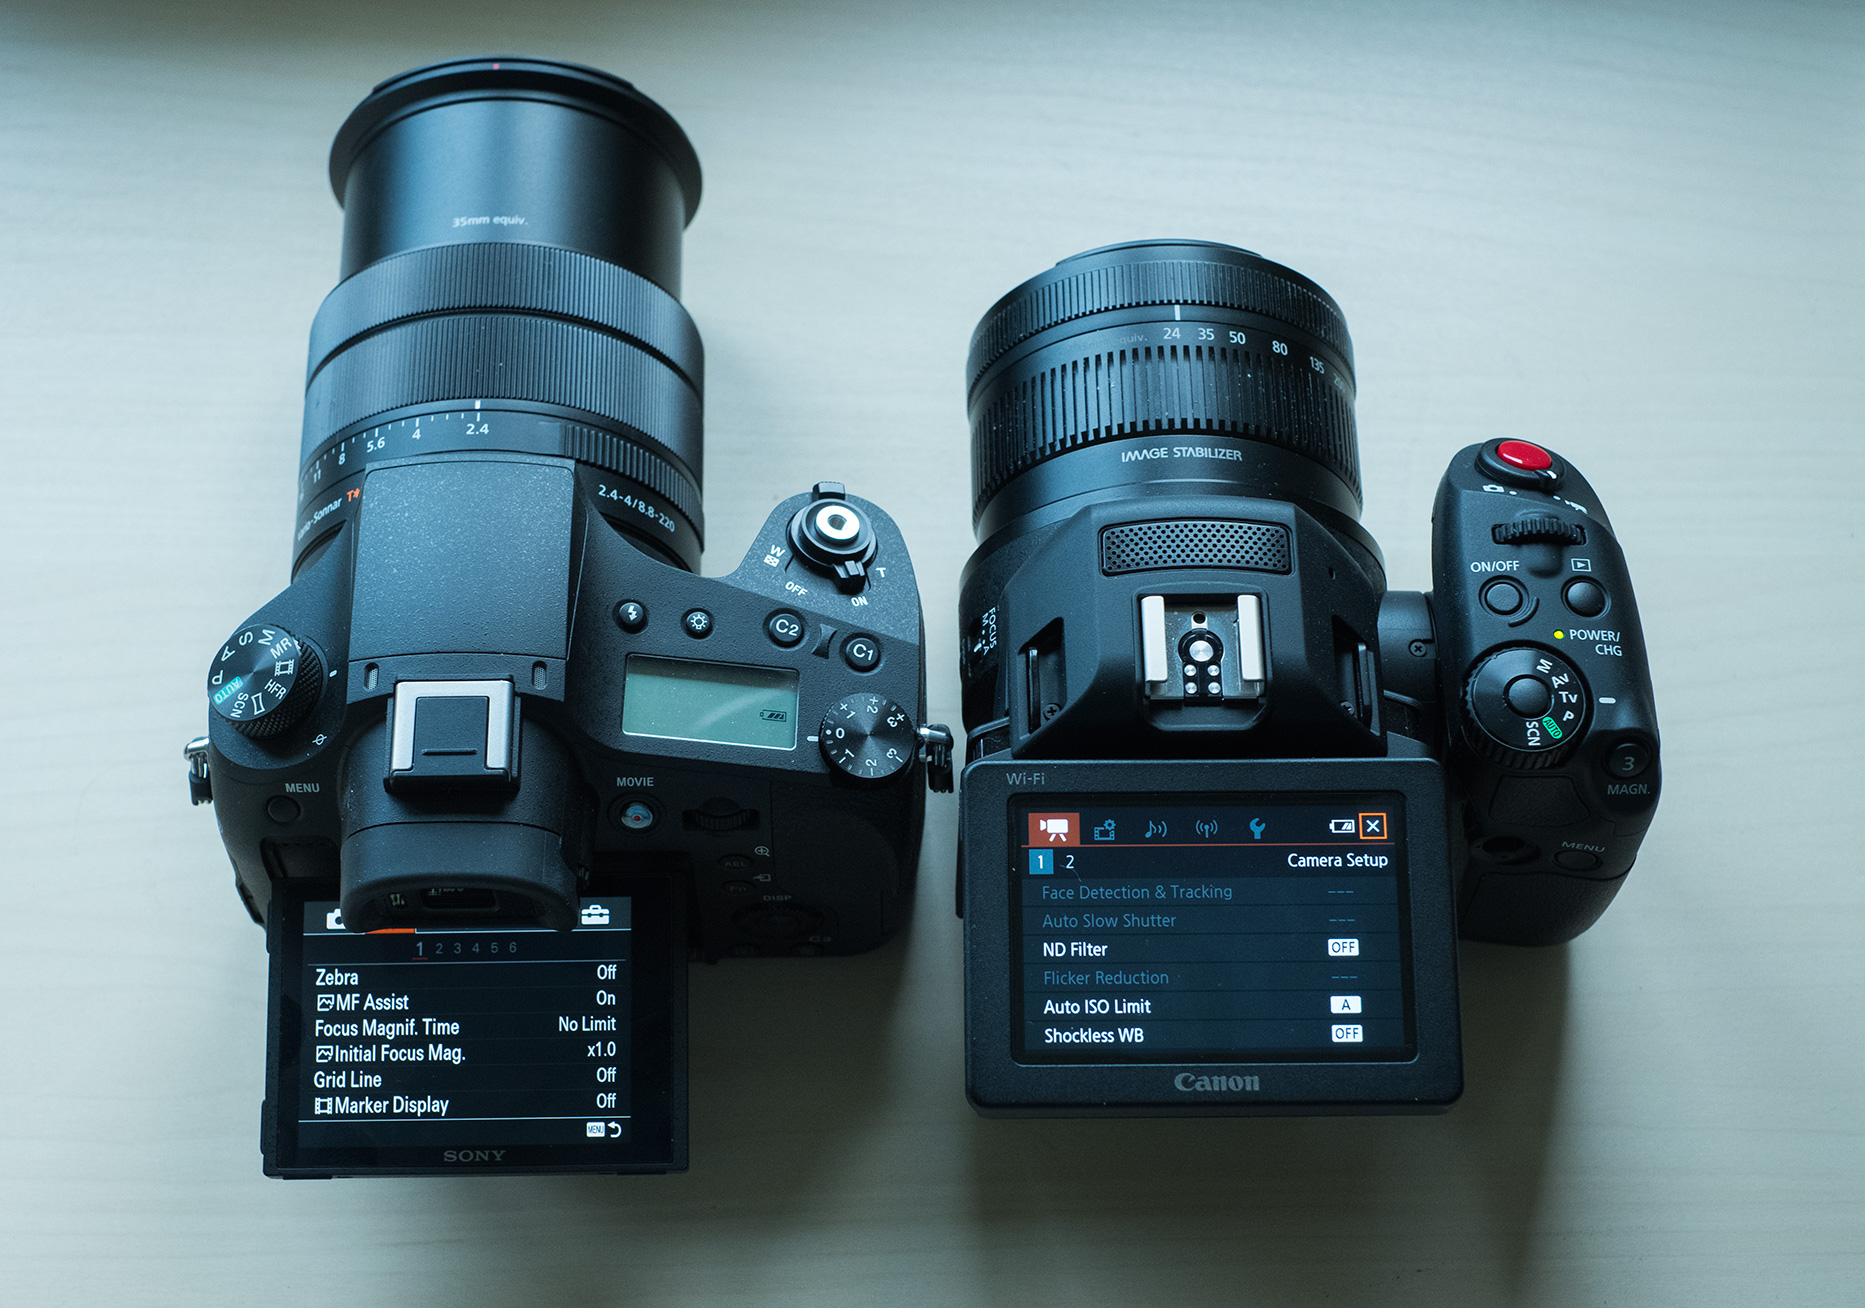 Canon XC10 versus Sony RX10 III  The Canon is underrated! - EOSHD